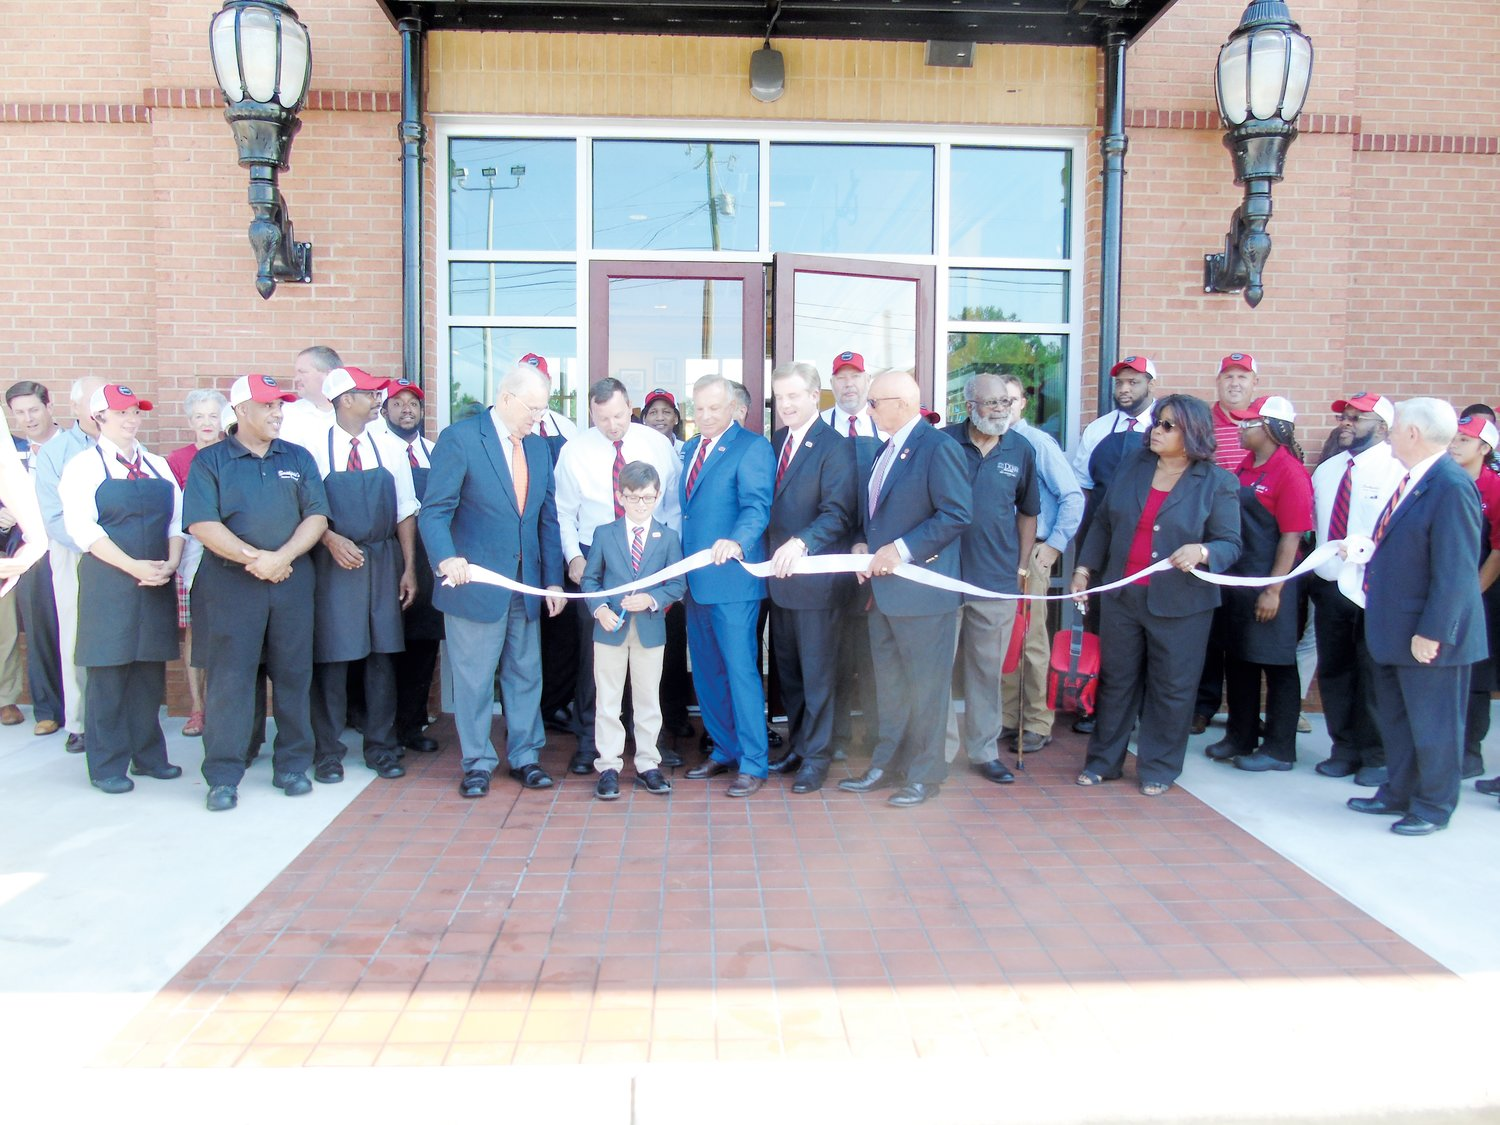 Smithfield's cuts ribbon to celebrate reopening | The Daily